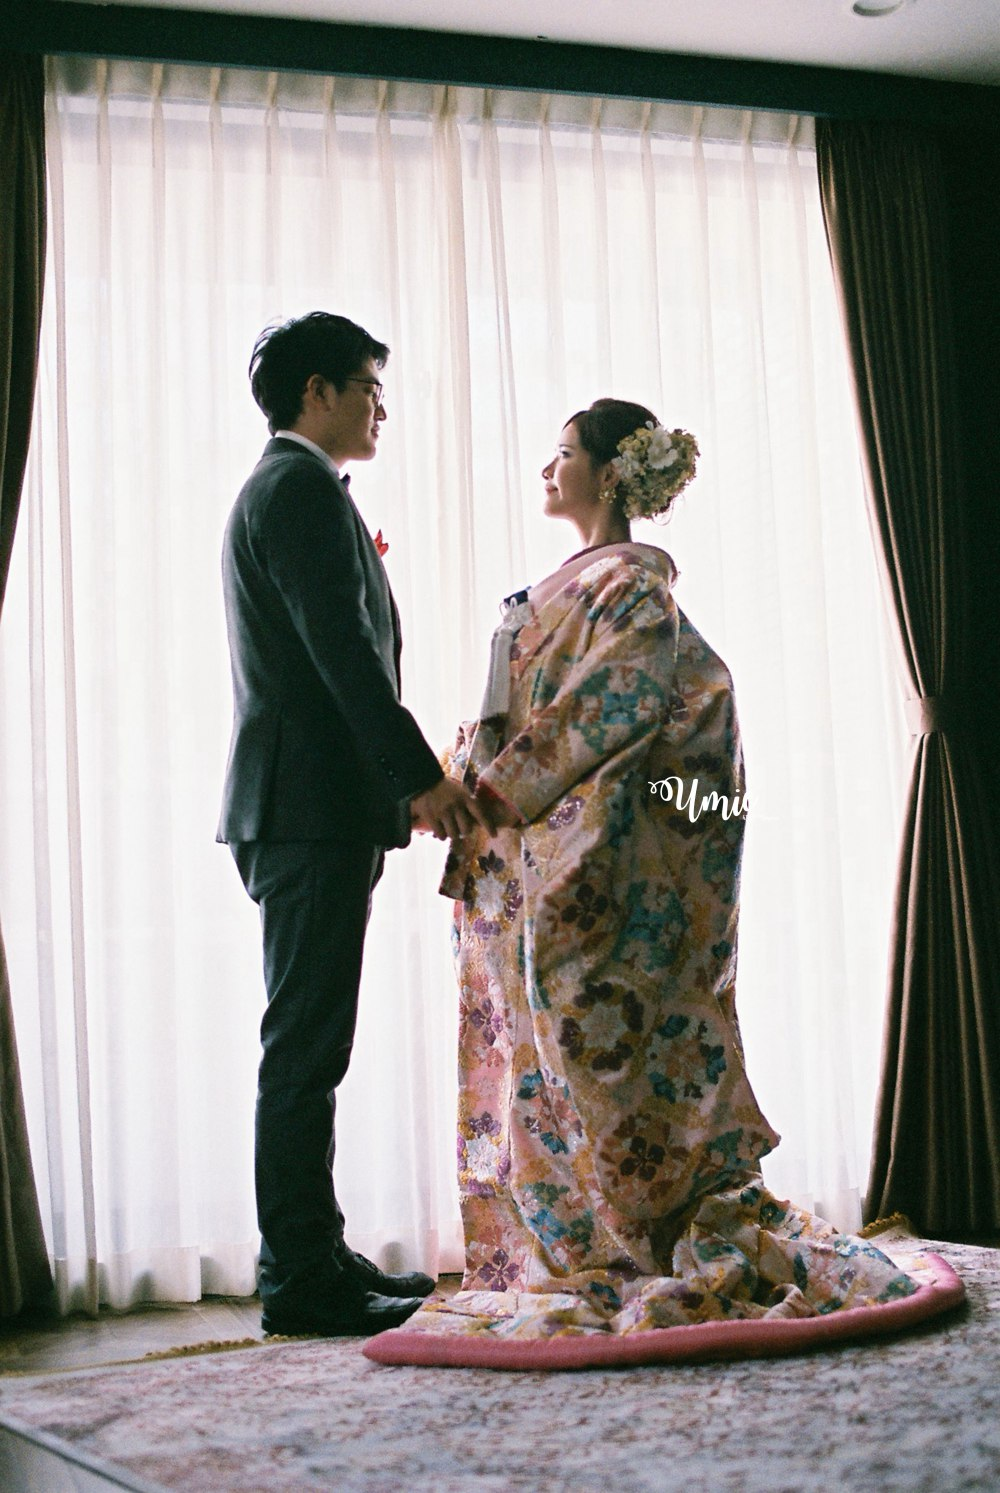 日本和服婚紗色打掛|彩色底片婚紗照 (婚紗公司: CULWA Bridals Photo Wedding, 攝影師: 小貓 )